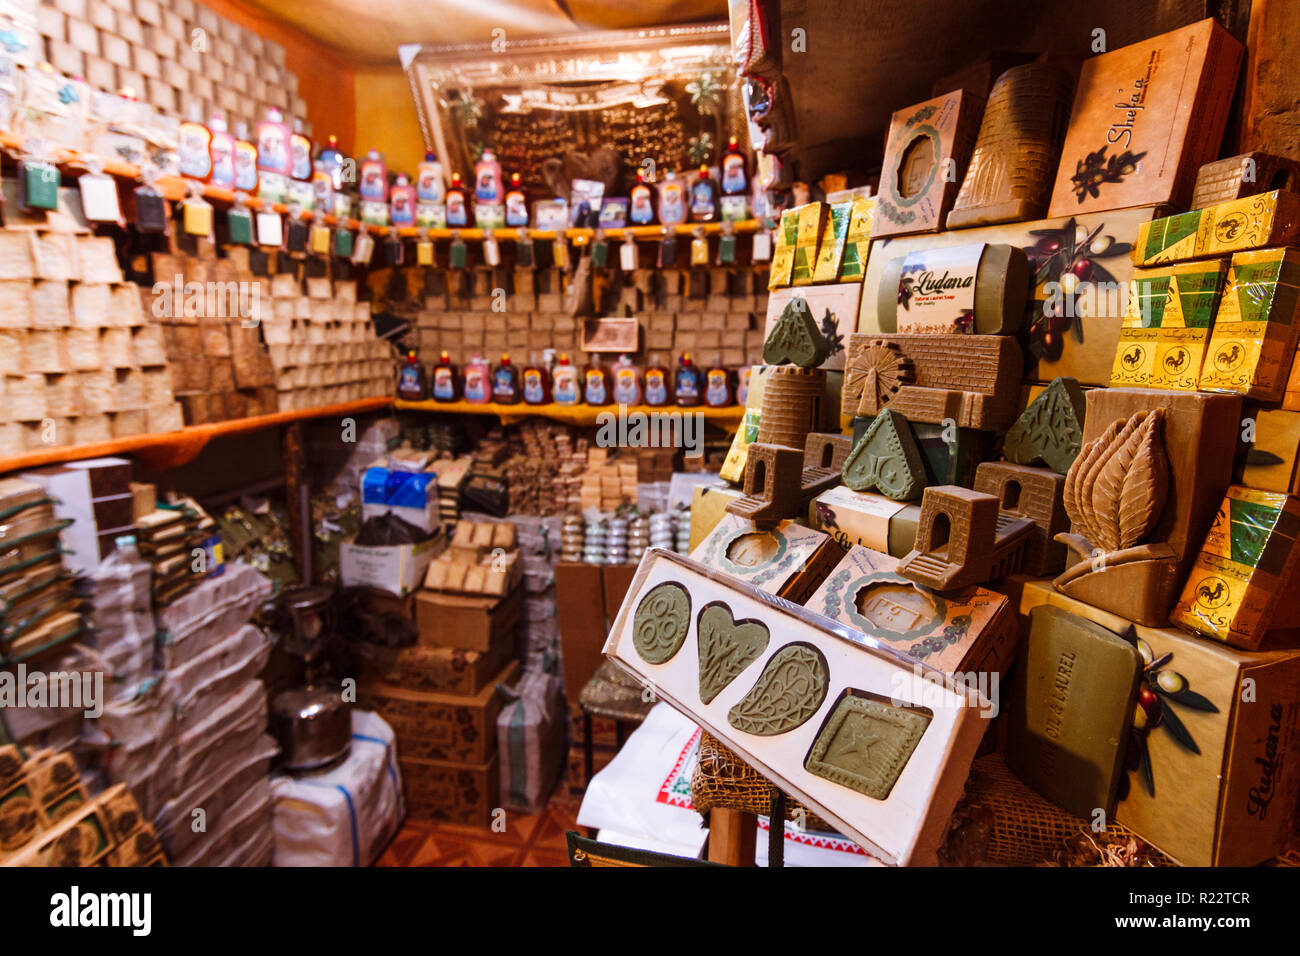 Aleppo, Aleppo Governorate, Syria : A shop in al-Madina Souq displaying the famous Aleppo soap products. - Stock Image